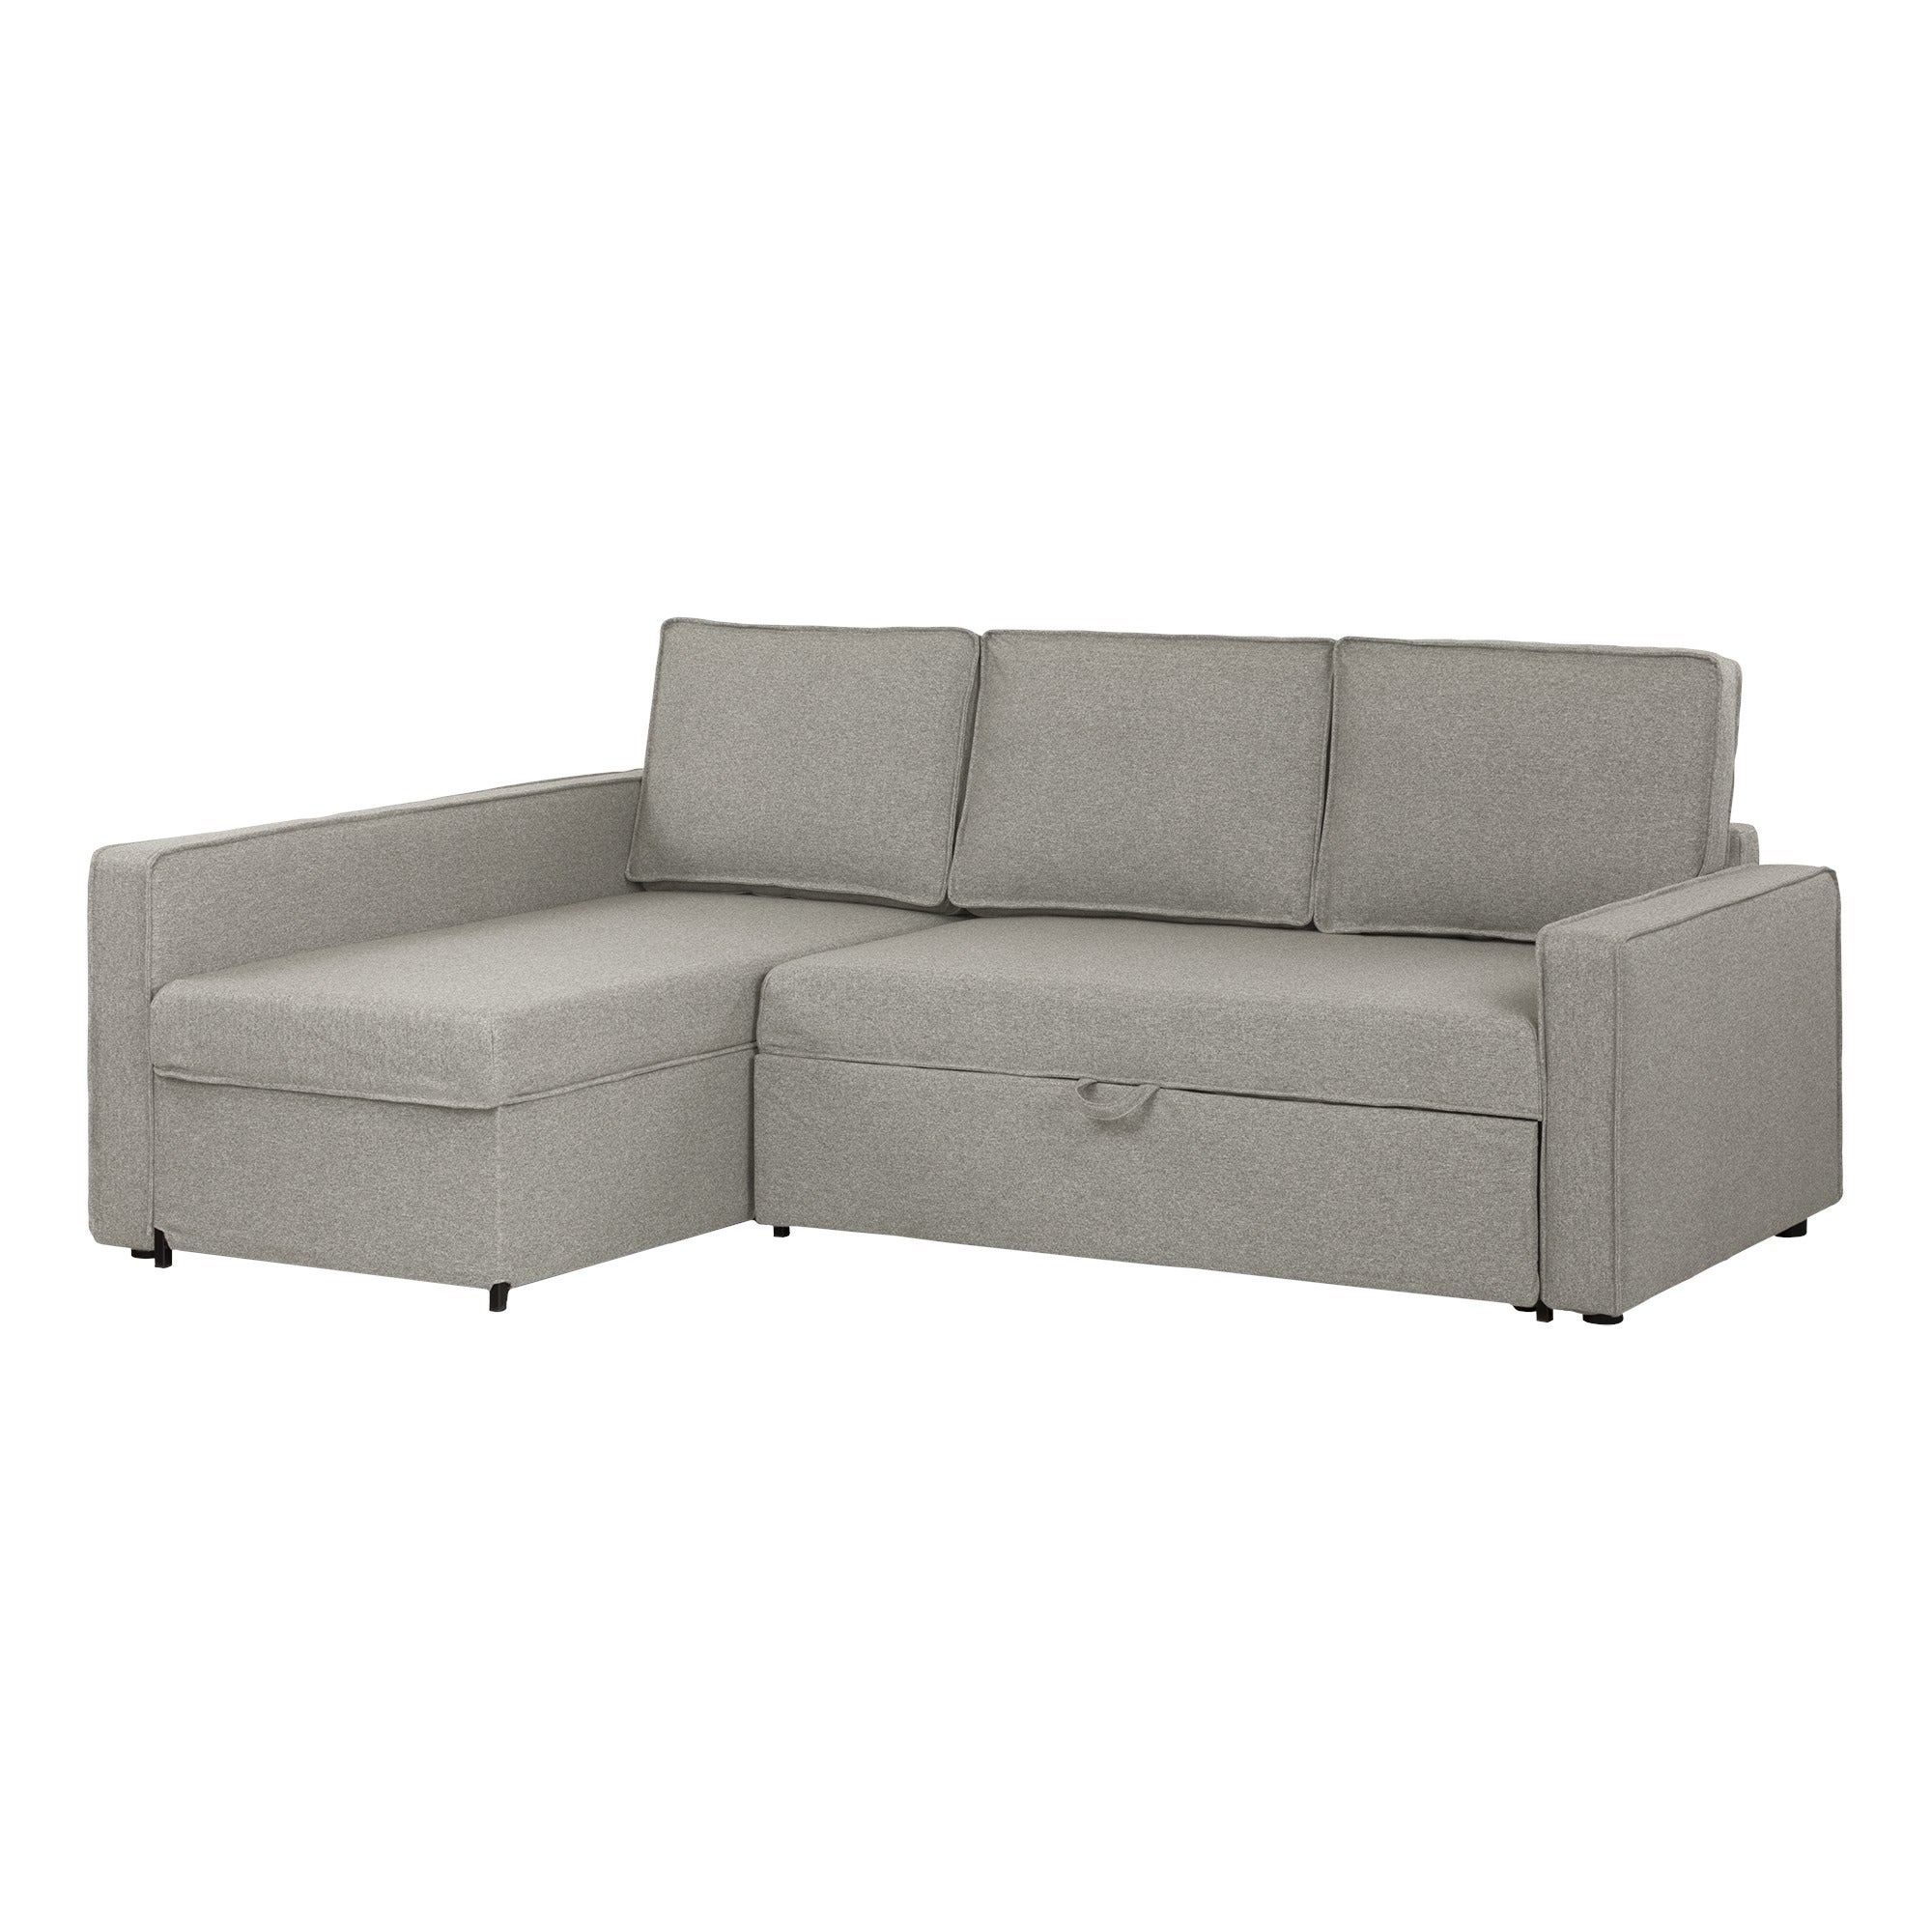 Surprising South Shore Live It Cozy Sectional Sofa Bed With Storage Pdpeps Interior Chair Design Pdpepsorg